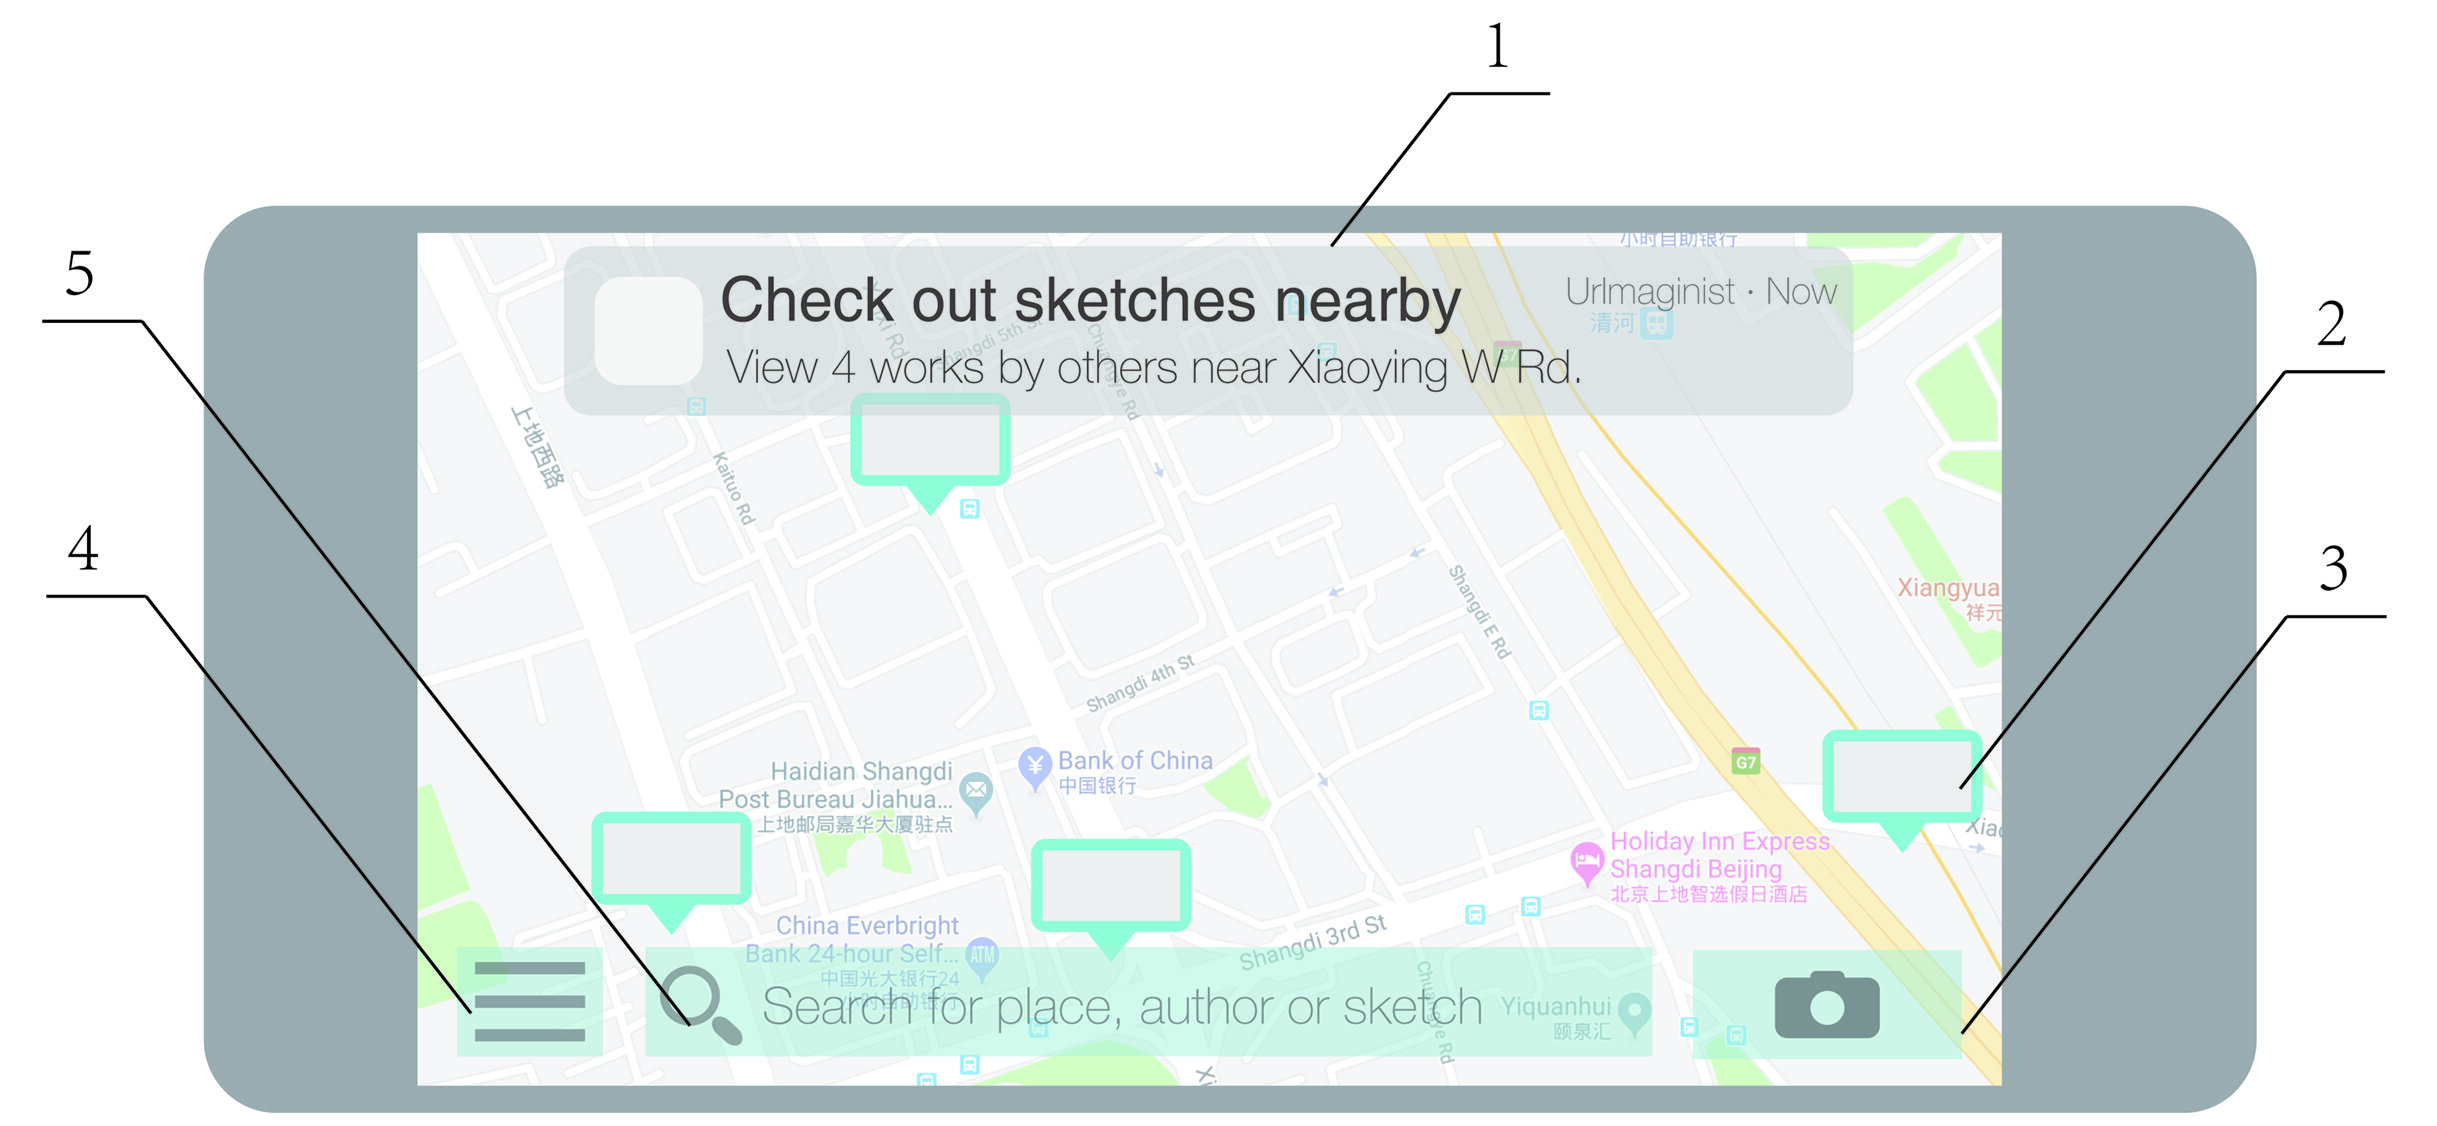 Figure 3. UrImaginist: the main interface with embedded map. 1: System push-message notifying drawings nearby; 2: marks indicating drawings on map; 3: button to enter camera mode as shown in Figures 1 and 2; 4: settings menu; 5: search for drawings by location, author, title or date. Copyright: Sicheng Wang, 2019.